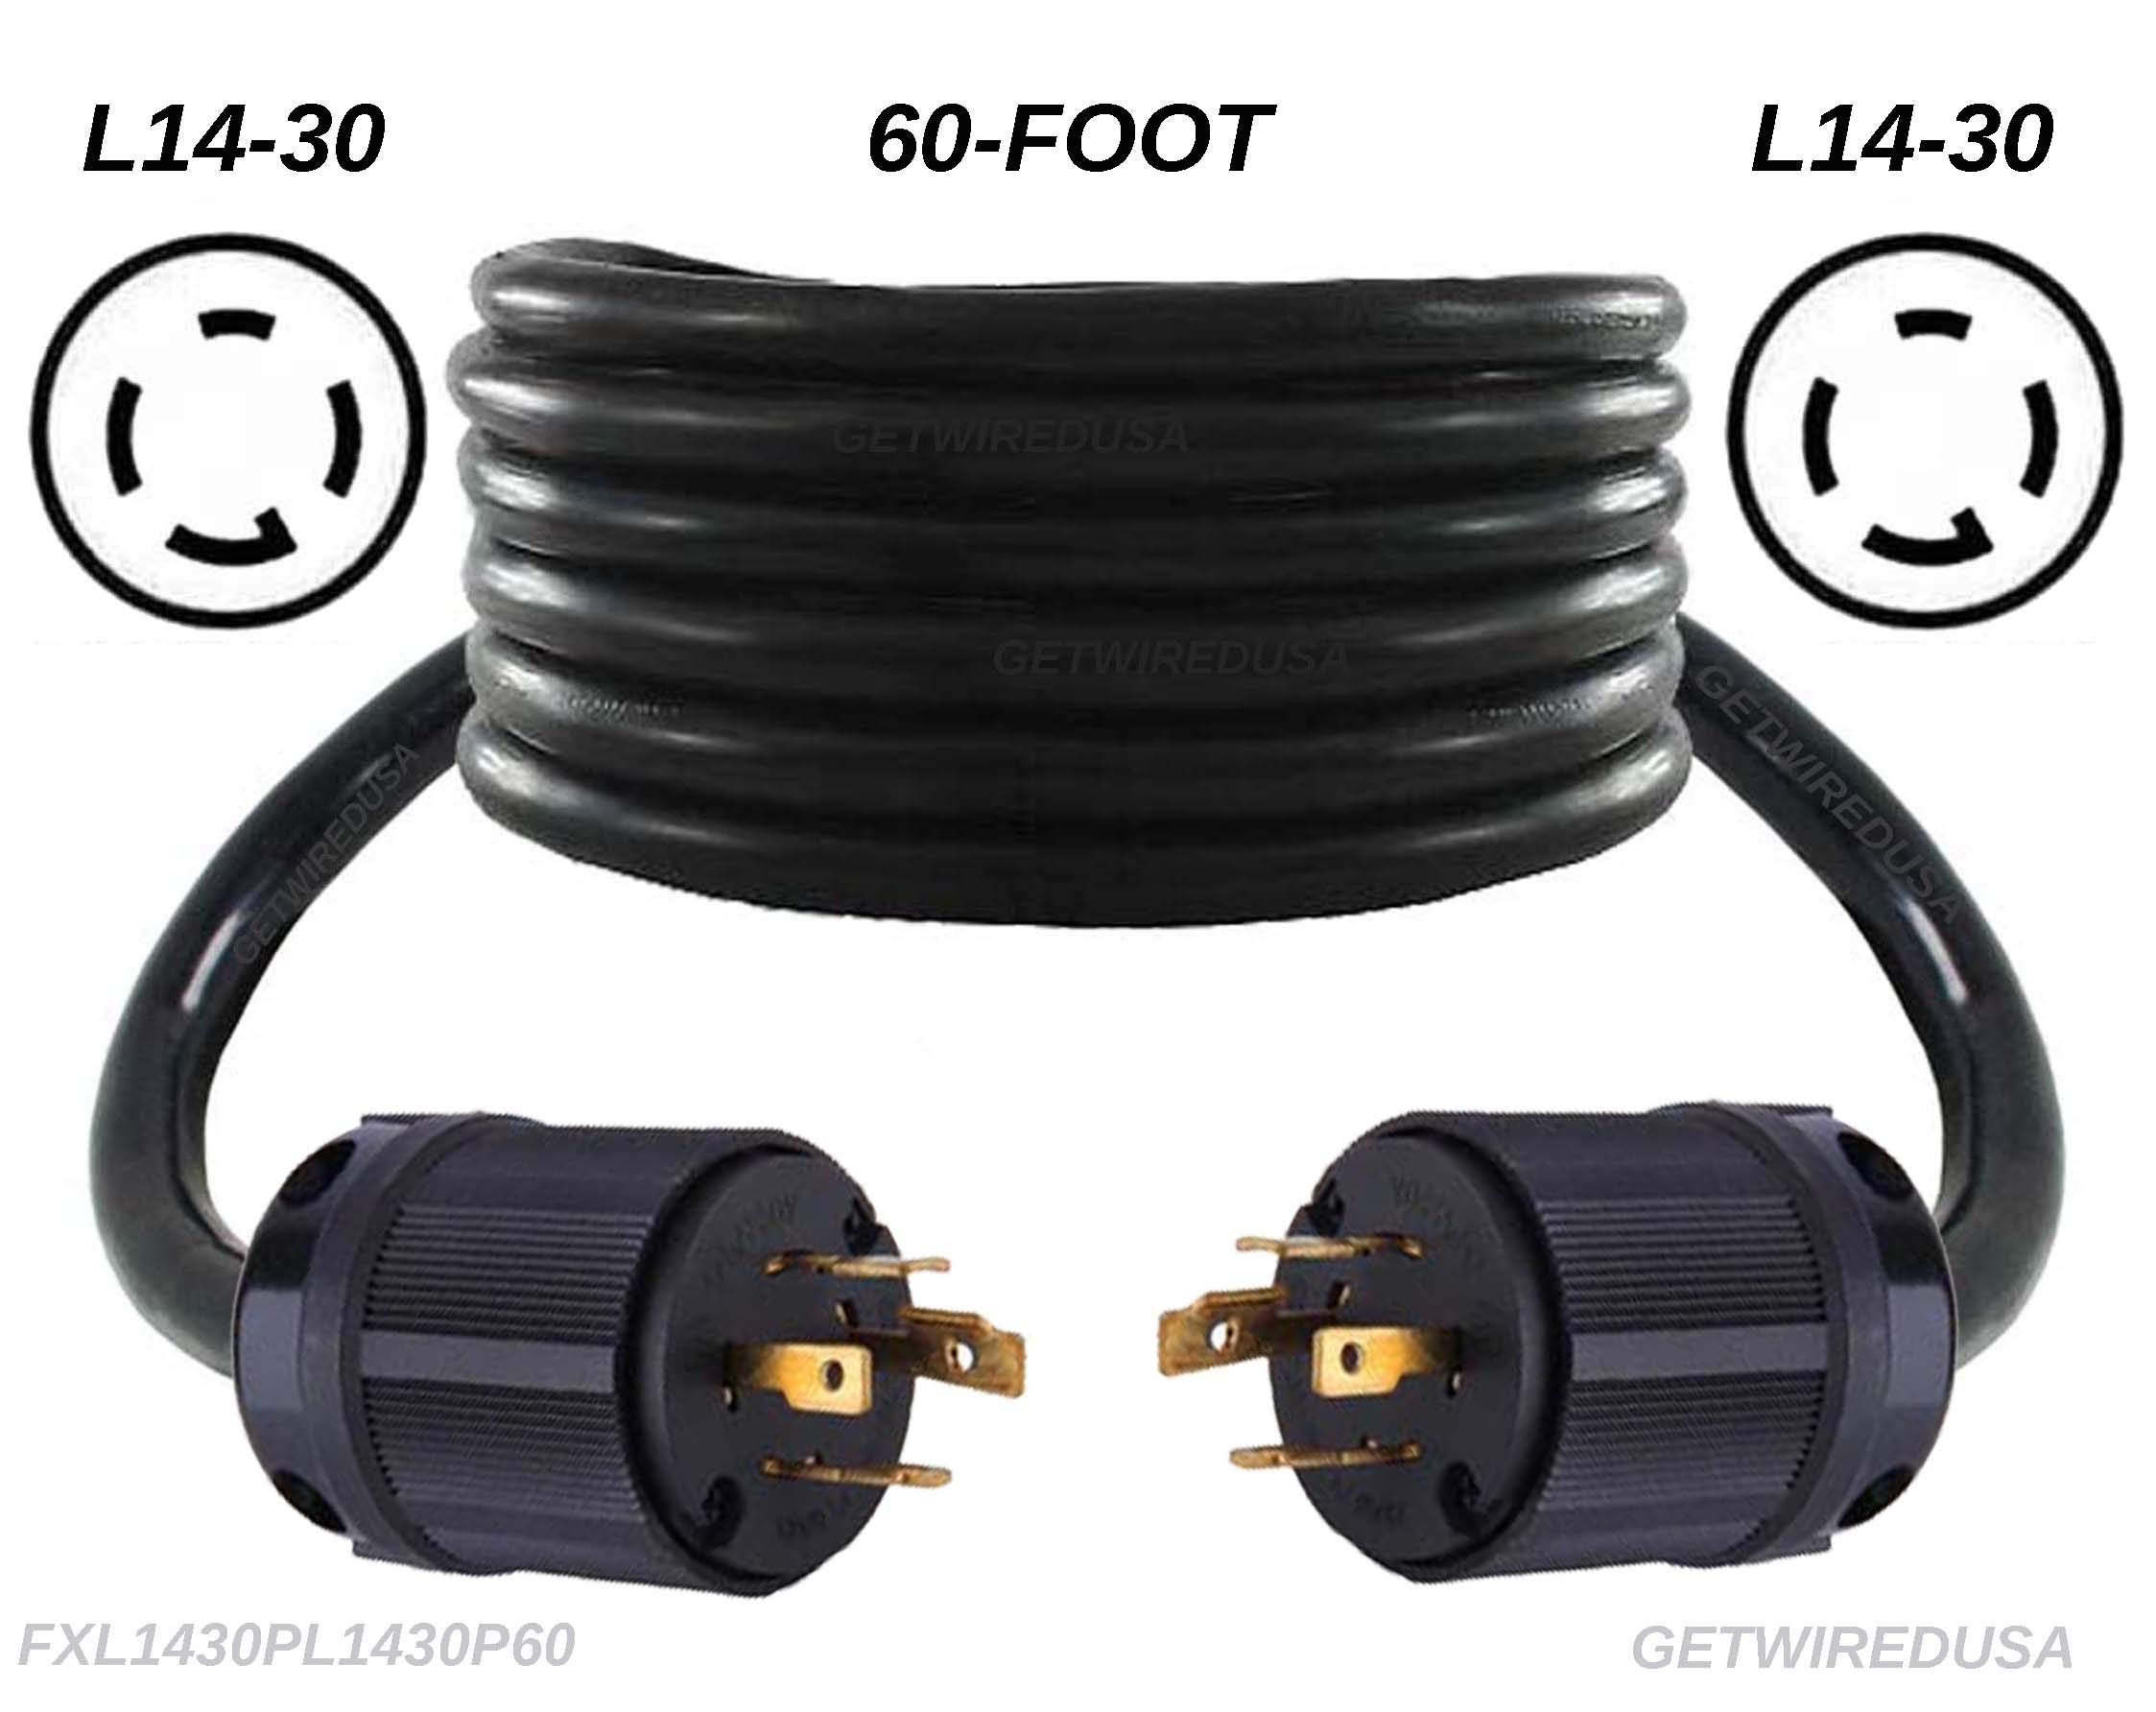 getwiredusa 60FT L14-30P Twist Lock Generator Male 4-Pin Plug Cord Adapter, Transfer Switch Connector Cable FXL1430PL1430P-60